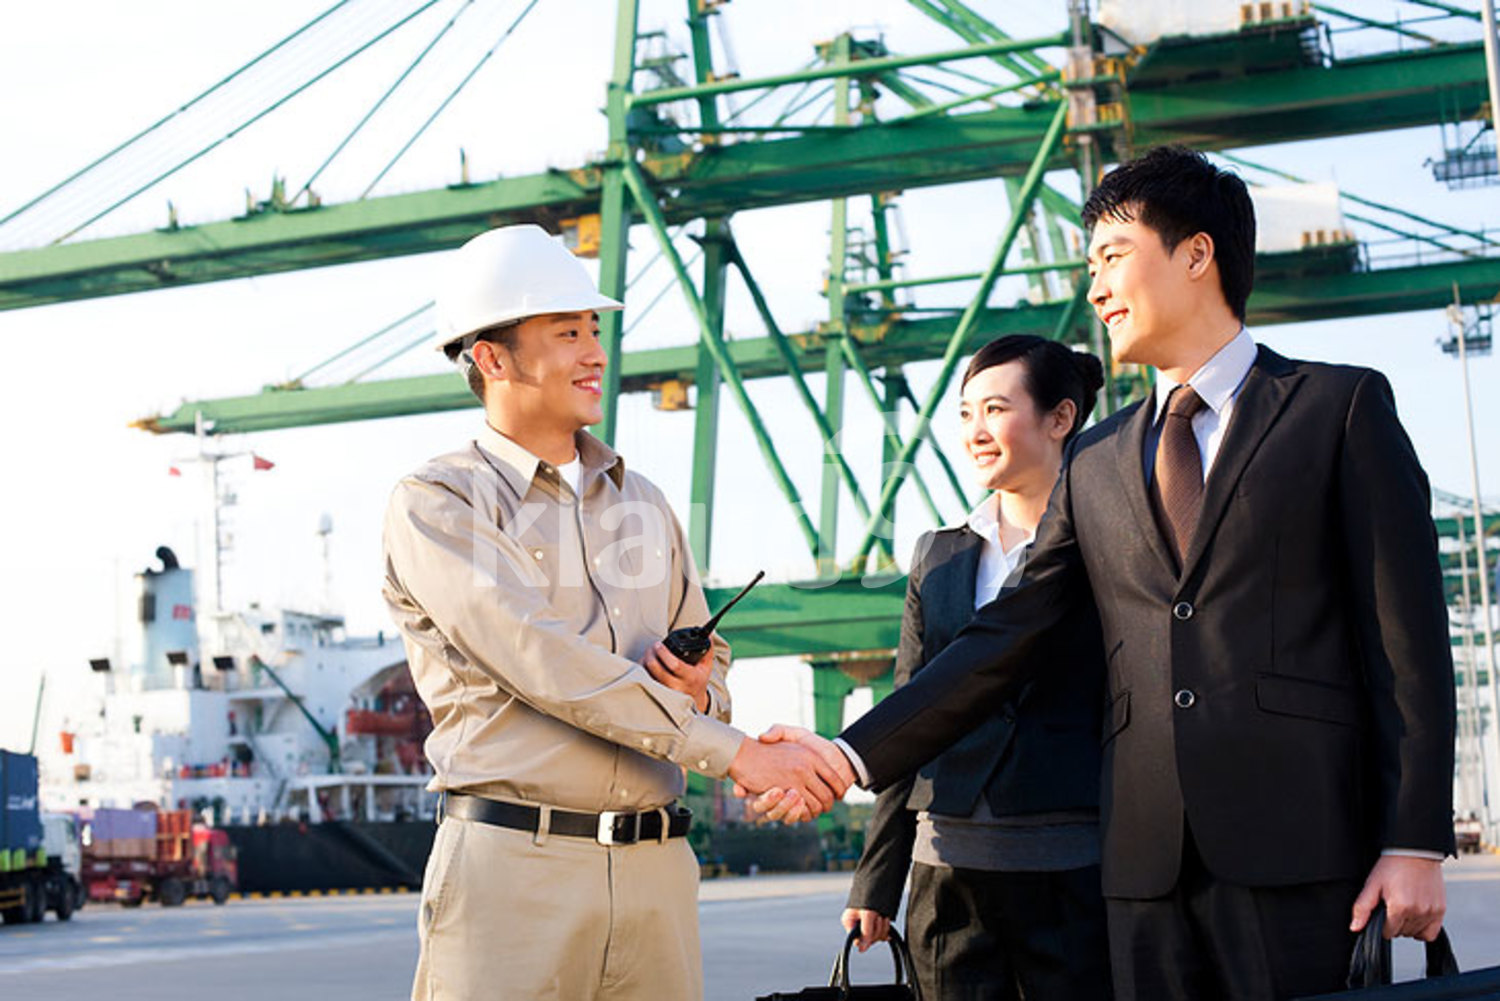 Chinese businesspeople and a shipping industry worker shaking hands at a shipping port